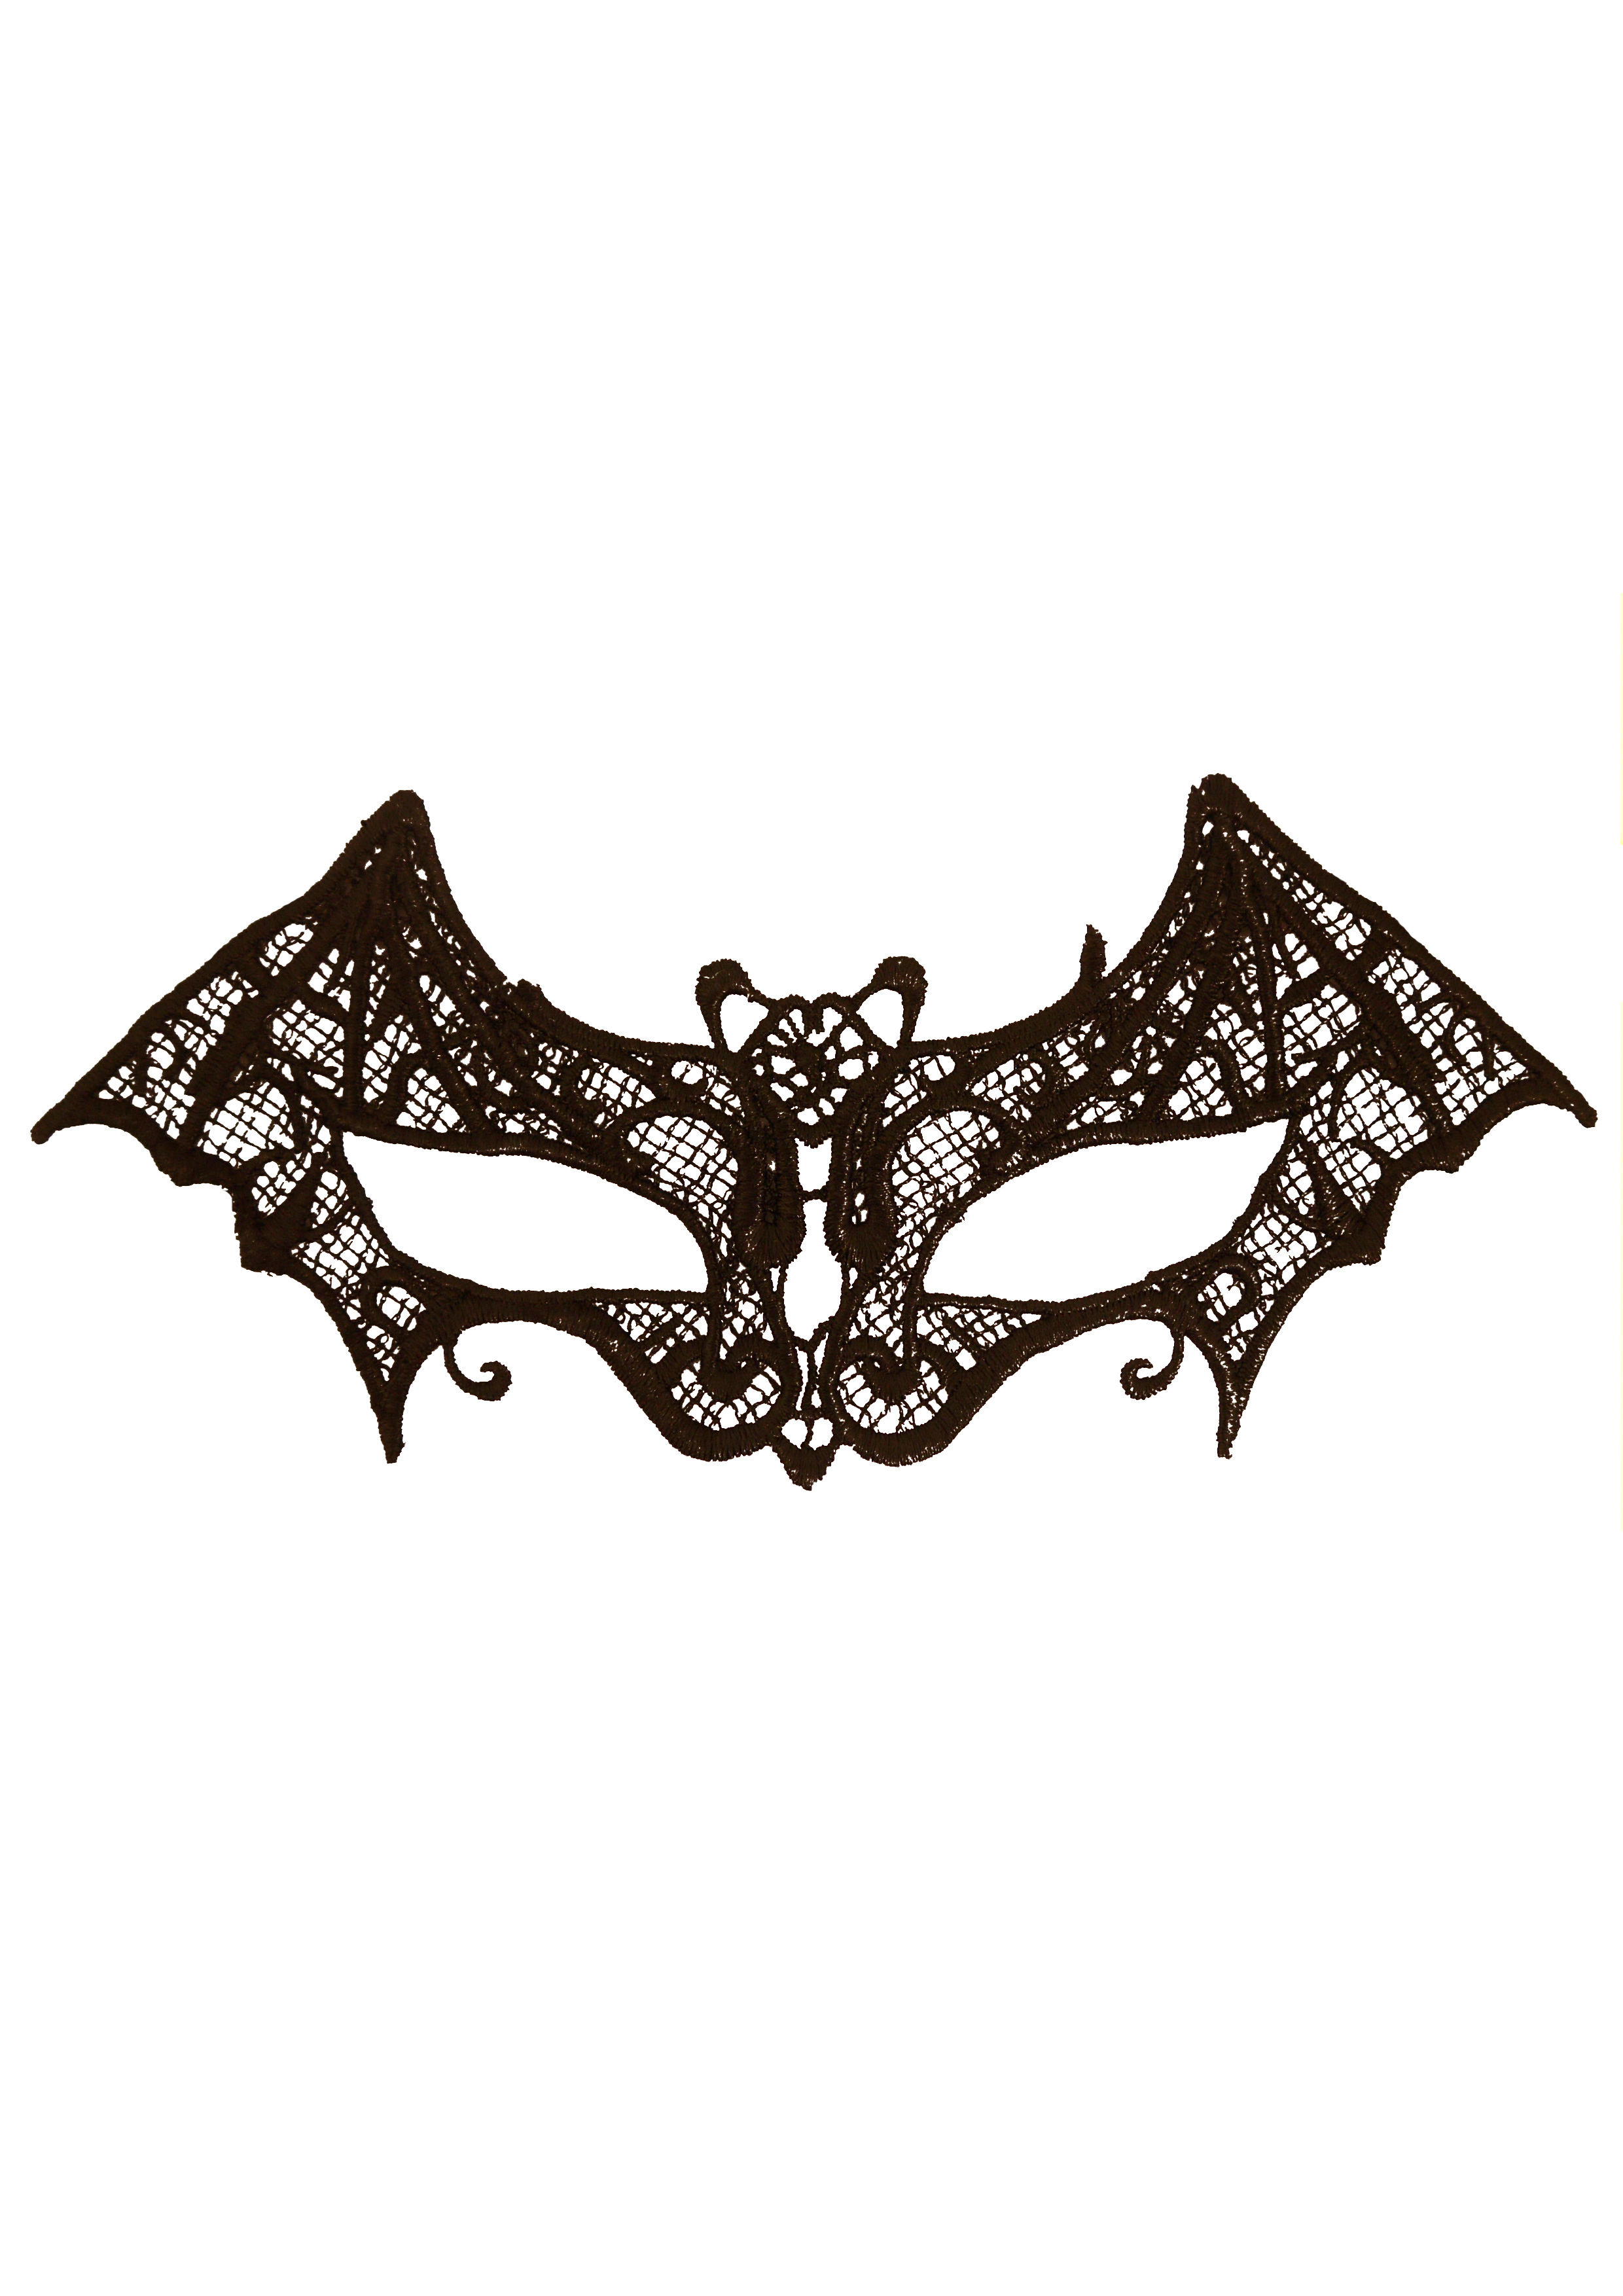 Bat Black Lace Eye Mask